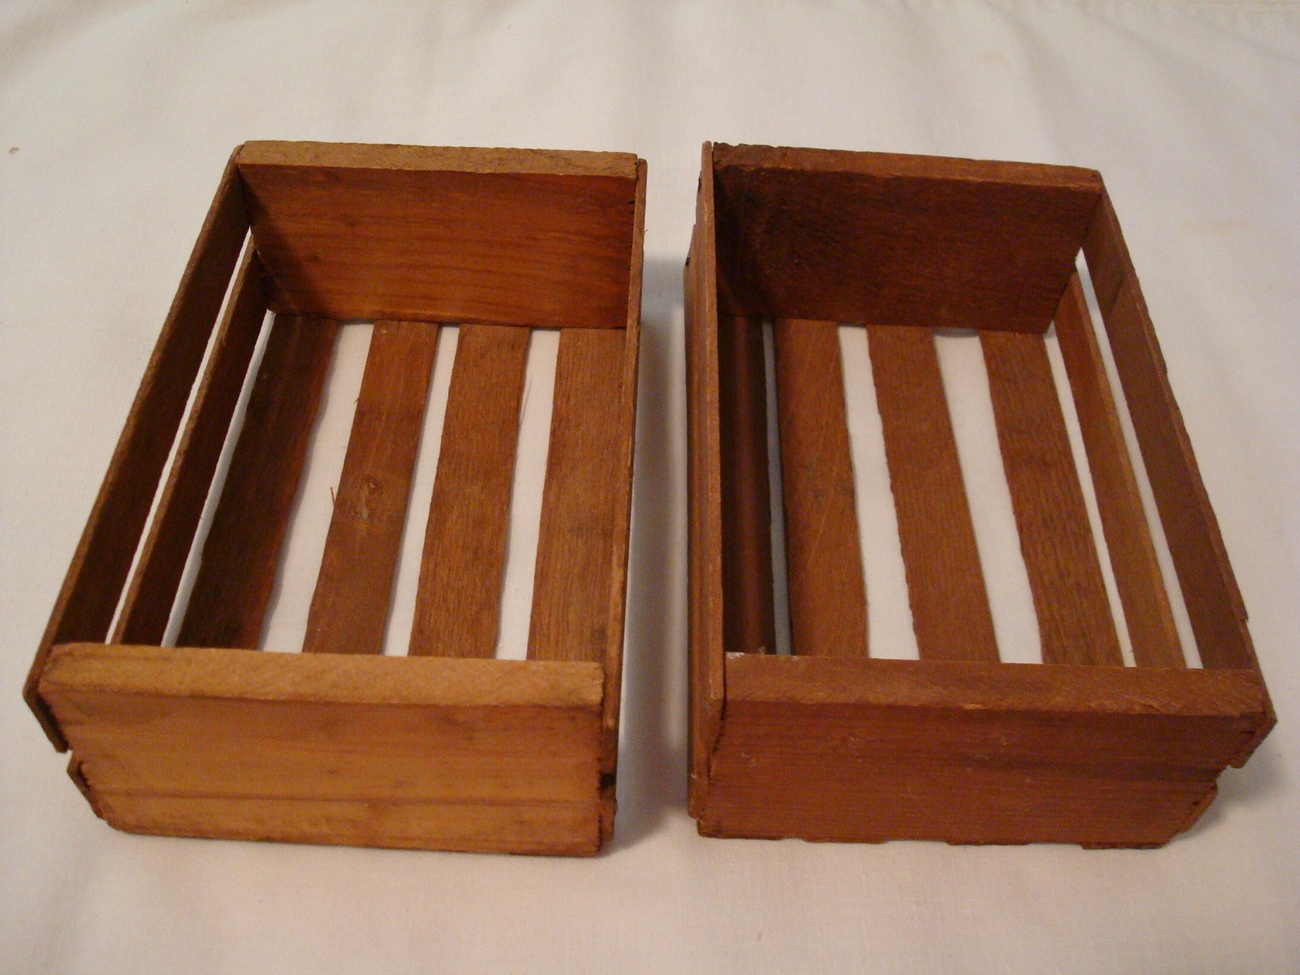 2 Small Slatted Wooden Boxes Containers for Display, Crafts, Storage, Decoration